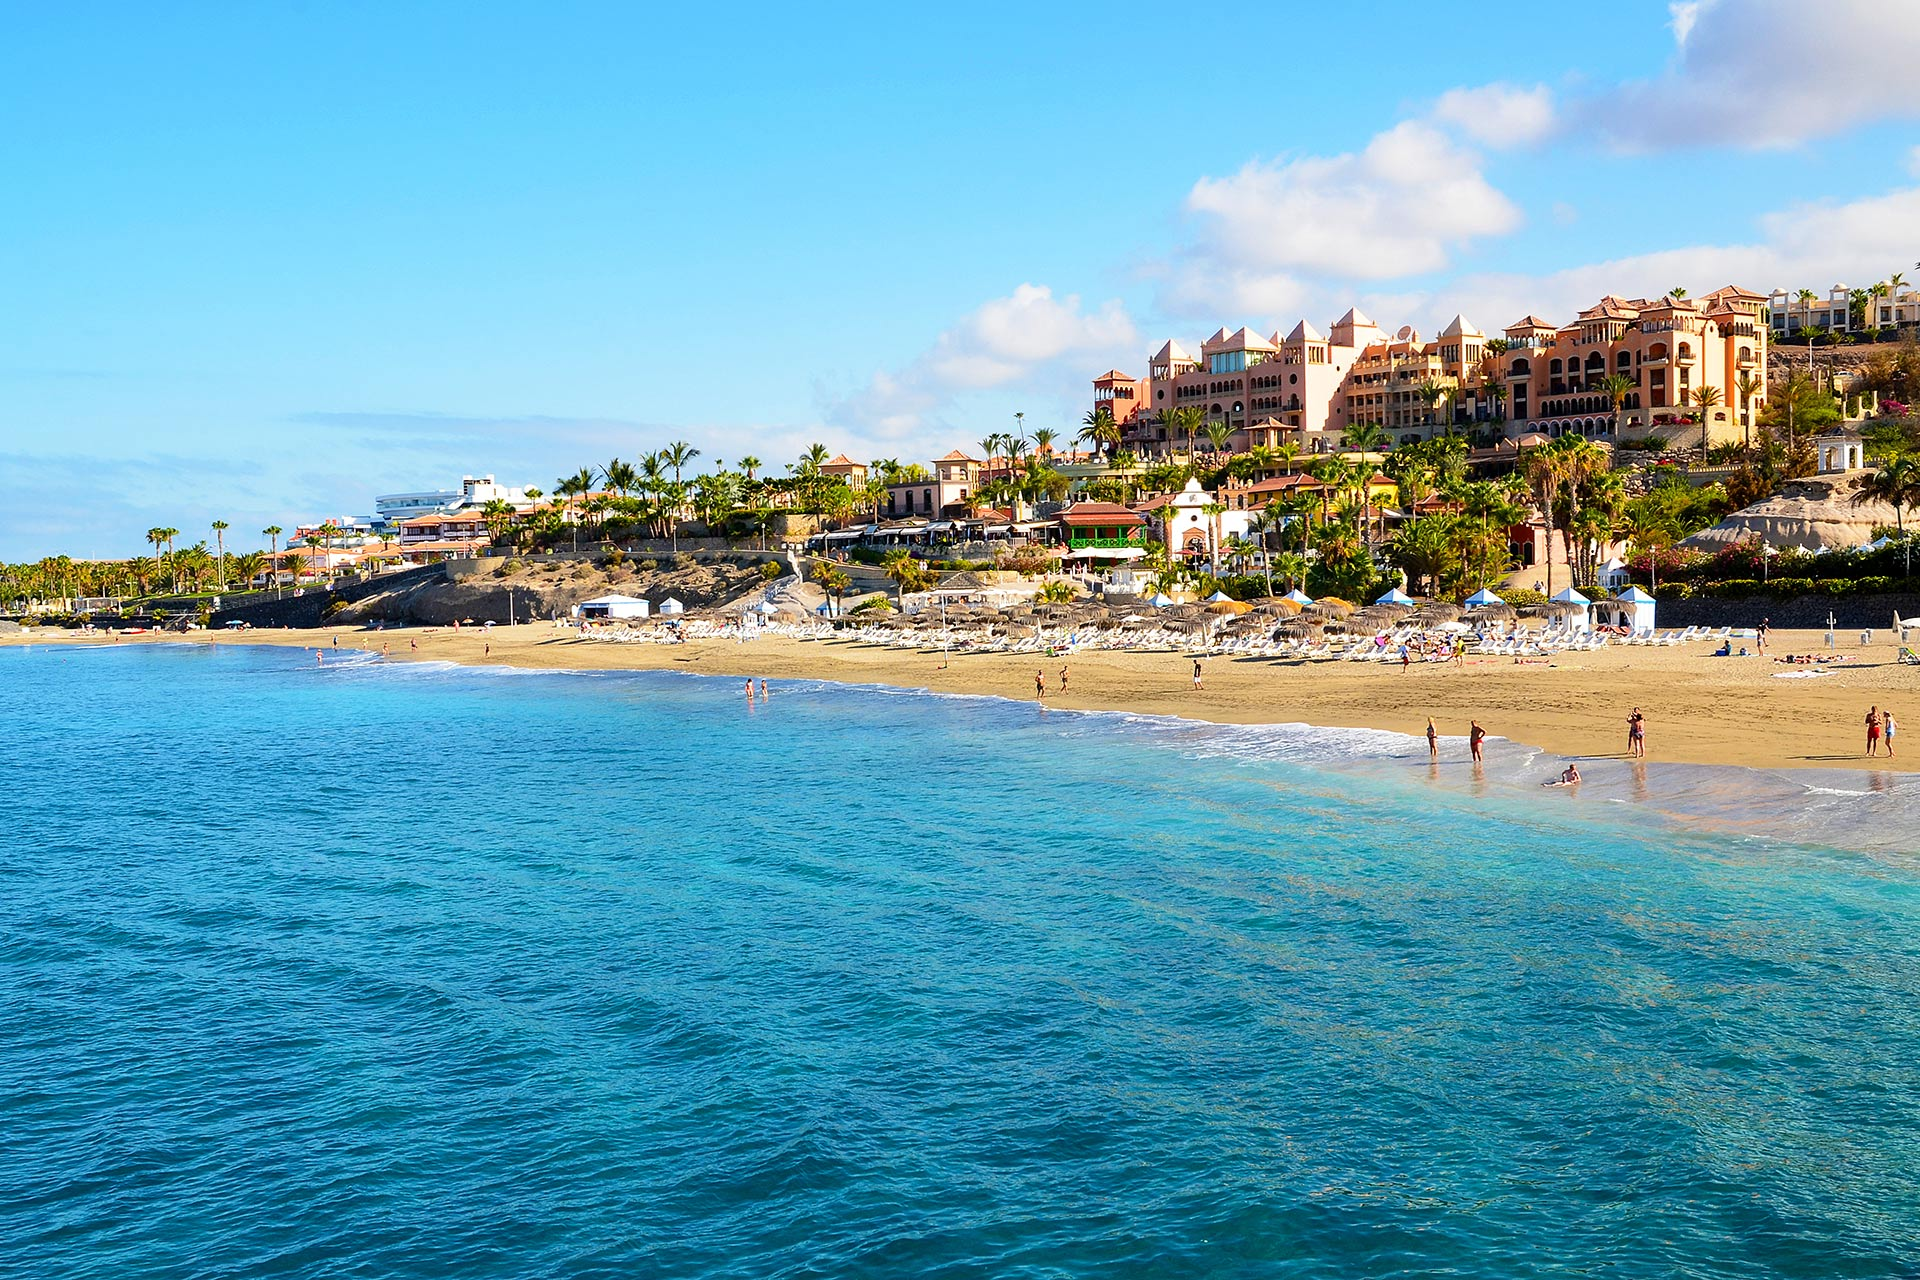 Costa Adeje, Tenerife, Canary Islands